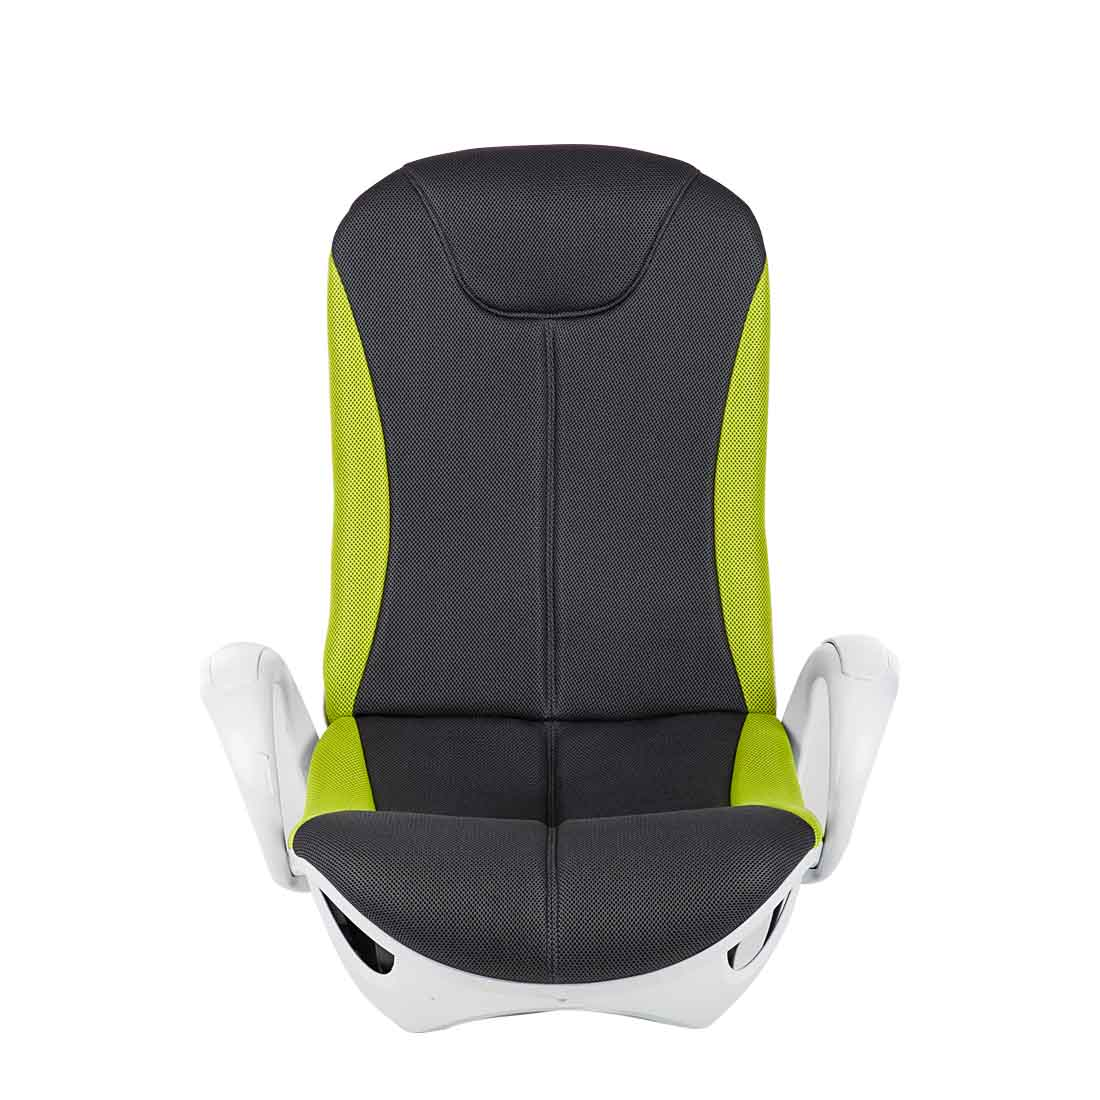 Multi Media Sessel Multimediasessel Grau Grün Gaming Chair Relax Soundsessel